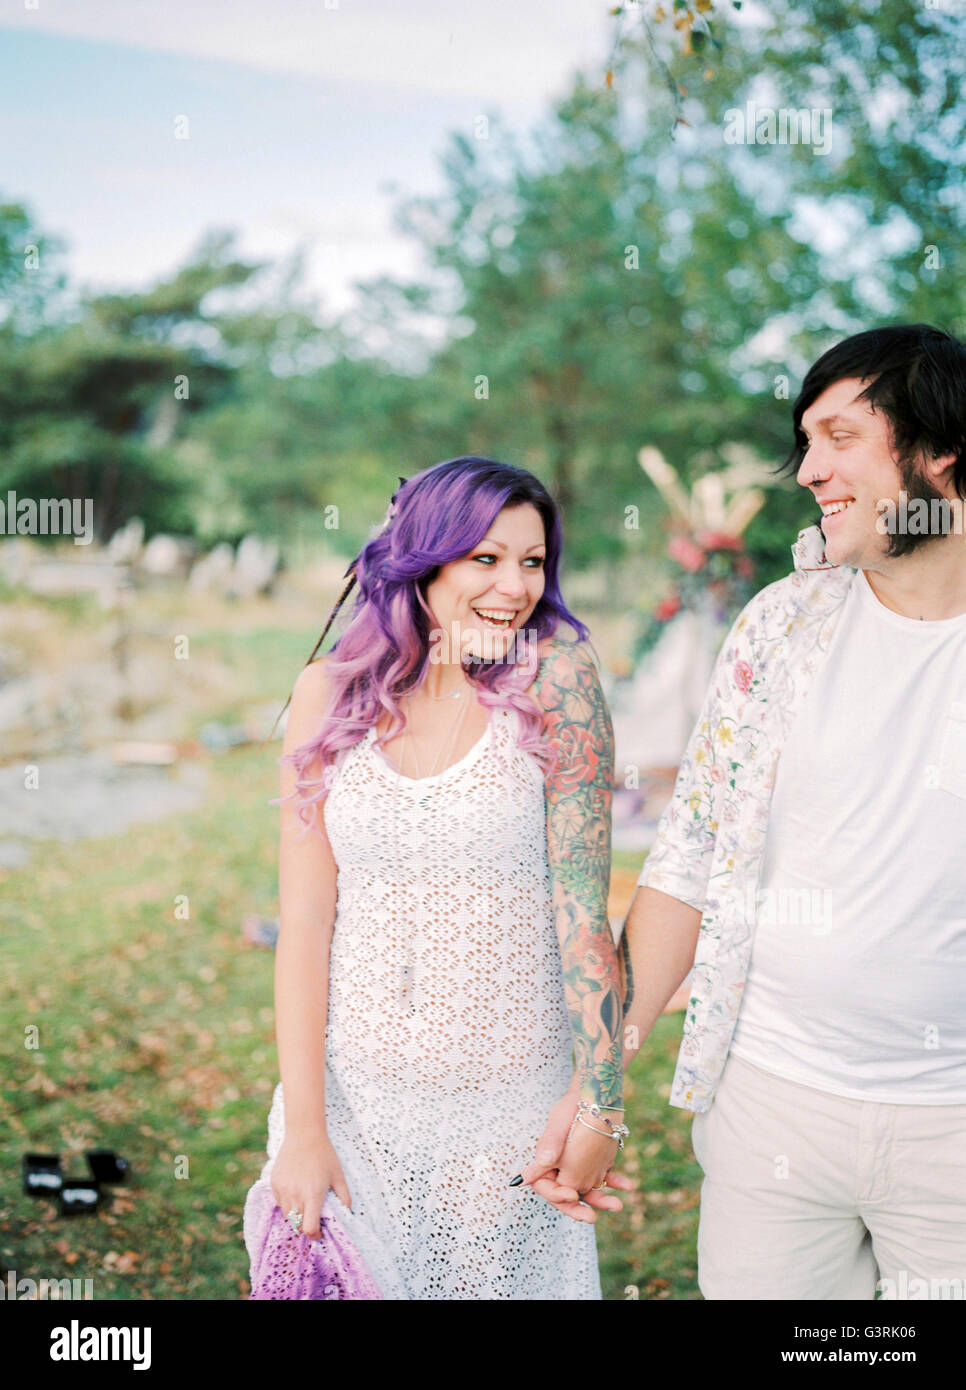 La Suède, Bride and Groom holding hands at permanent mariage hippie Photo Stock